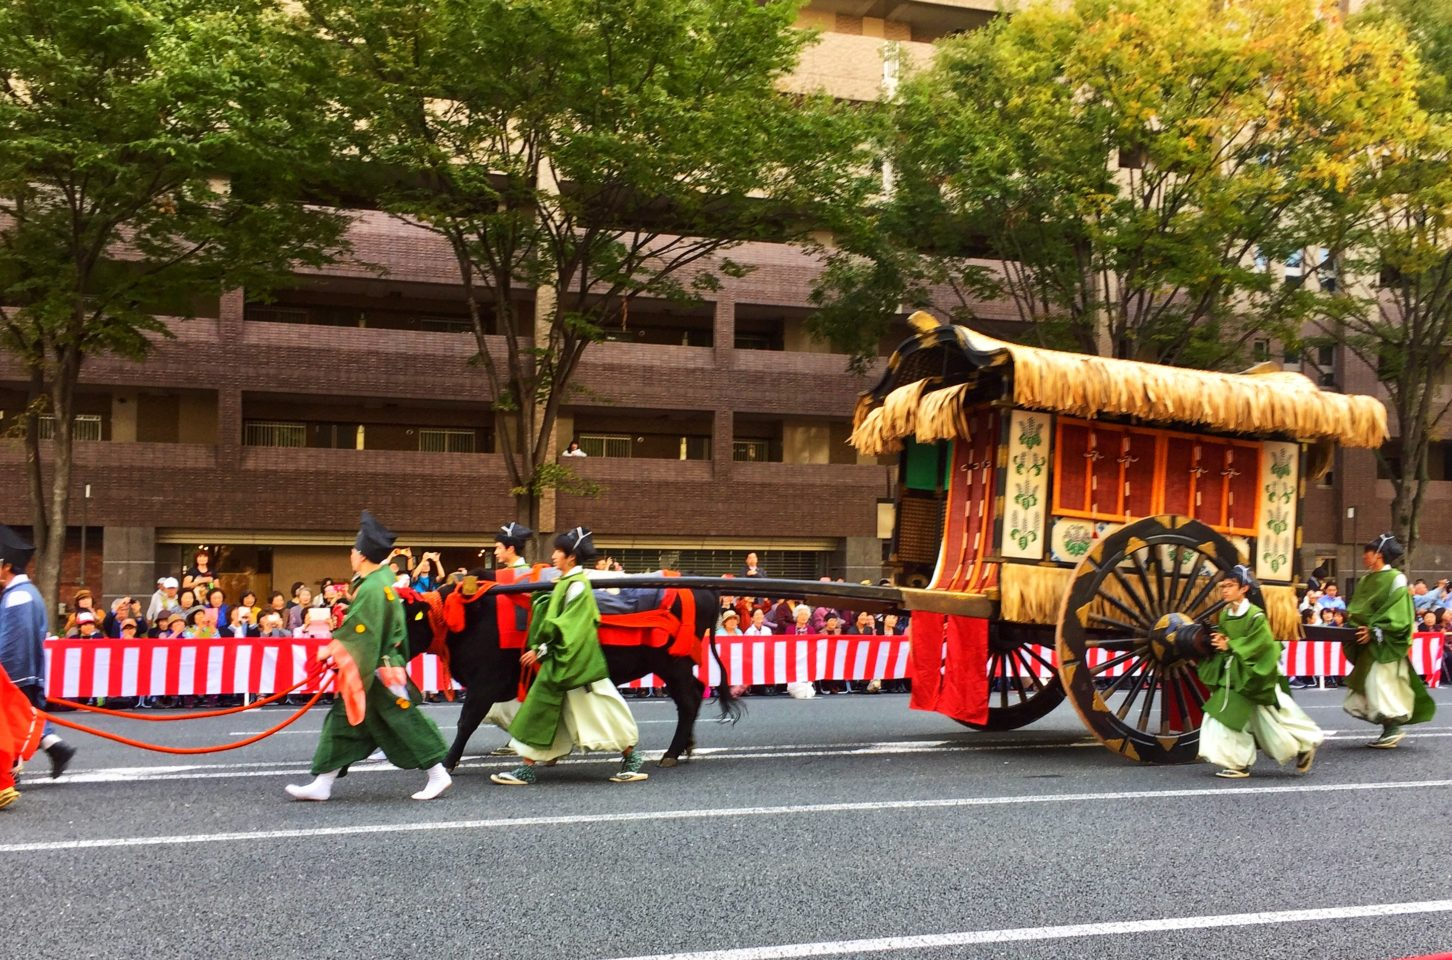 Japan Favorite Experiences ~ The Jidai Matsuri parade every year on October 22nd in Kyoto Japan